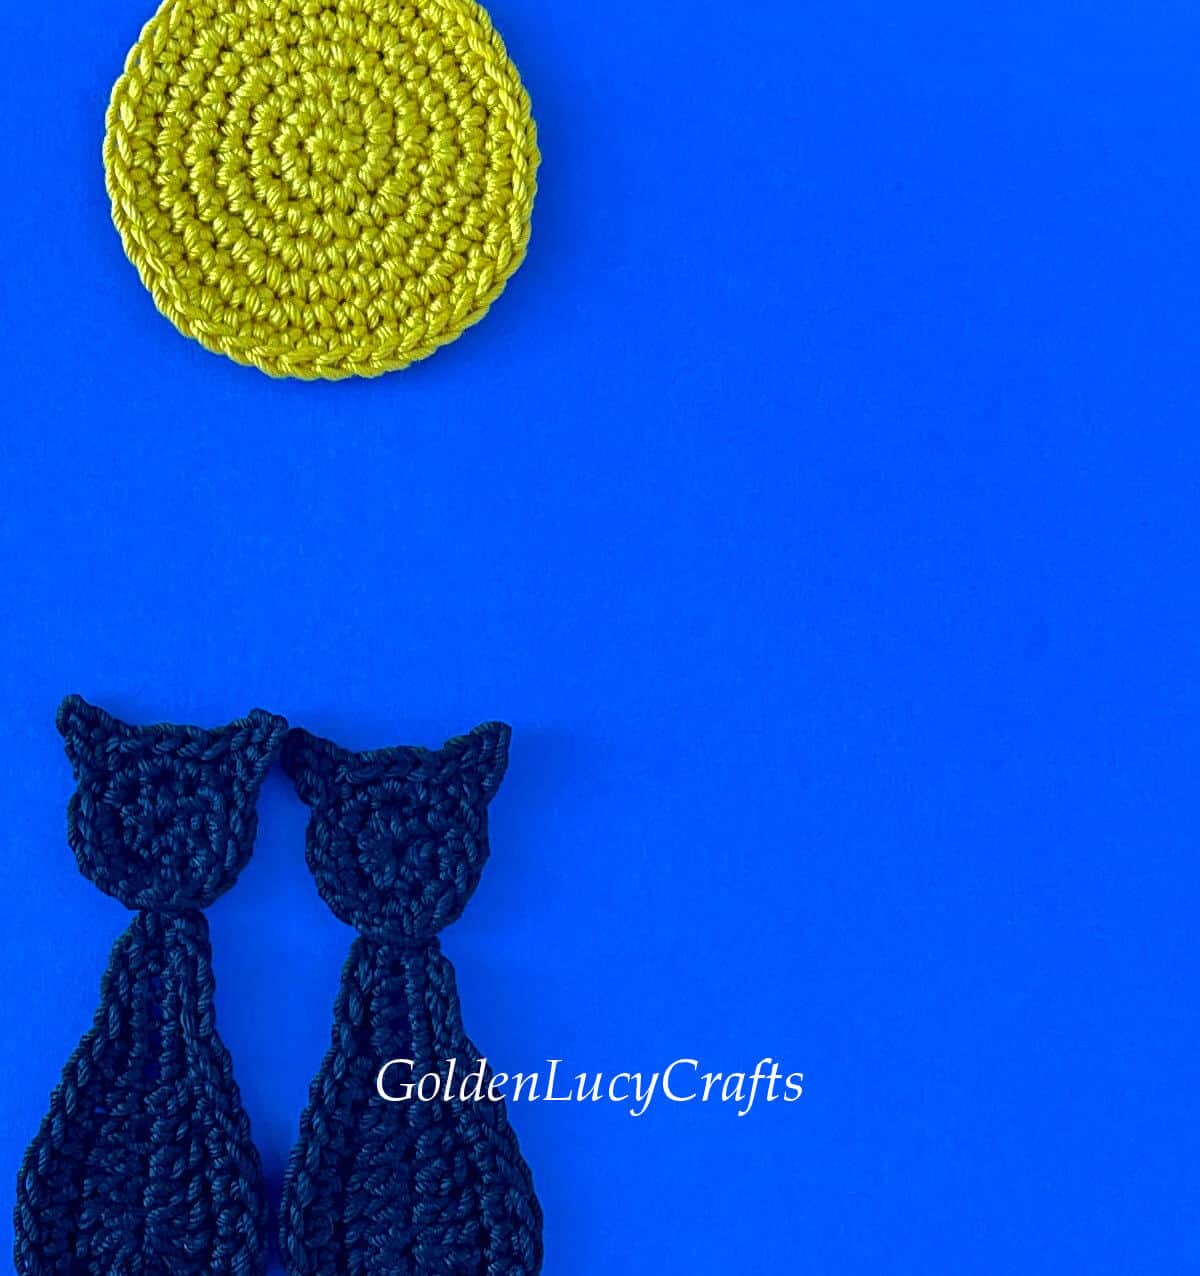 Crocheted black cats and moon on dark blue background, close up picture.